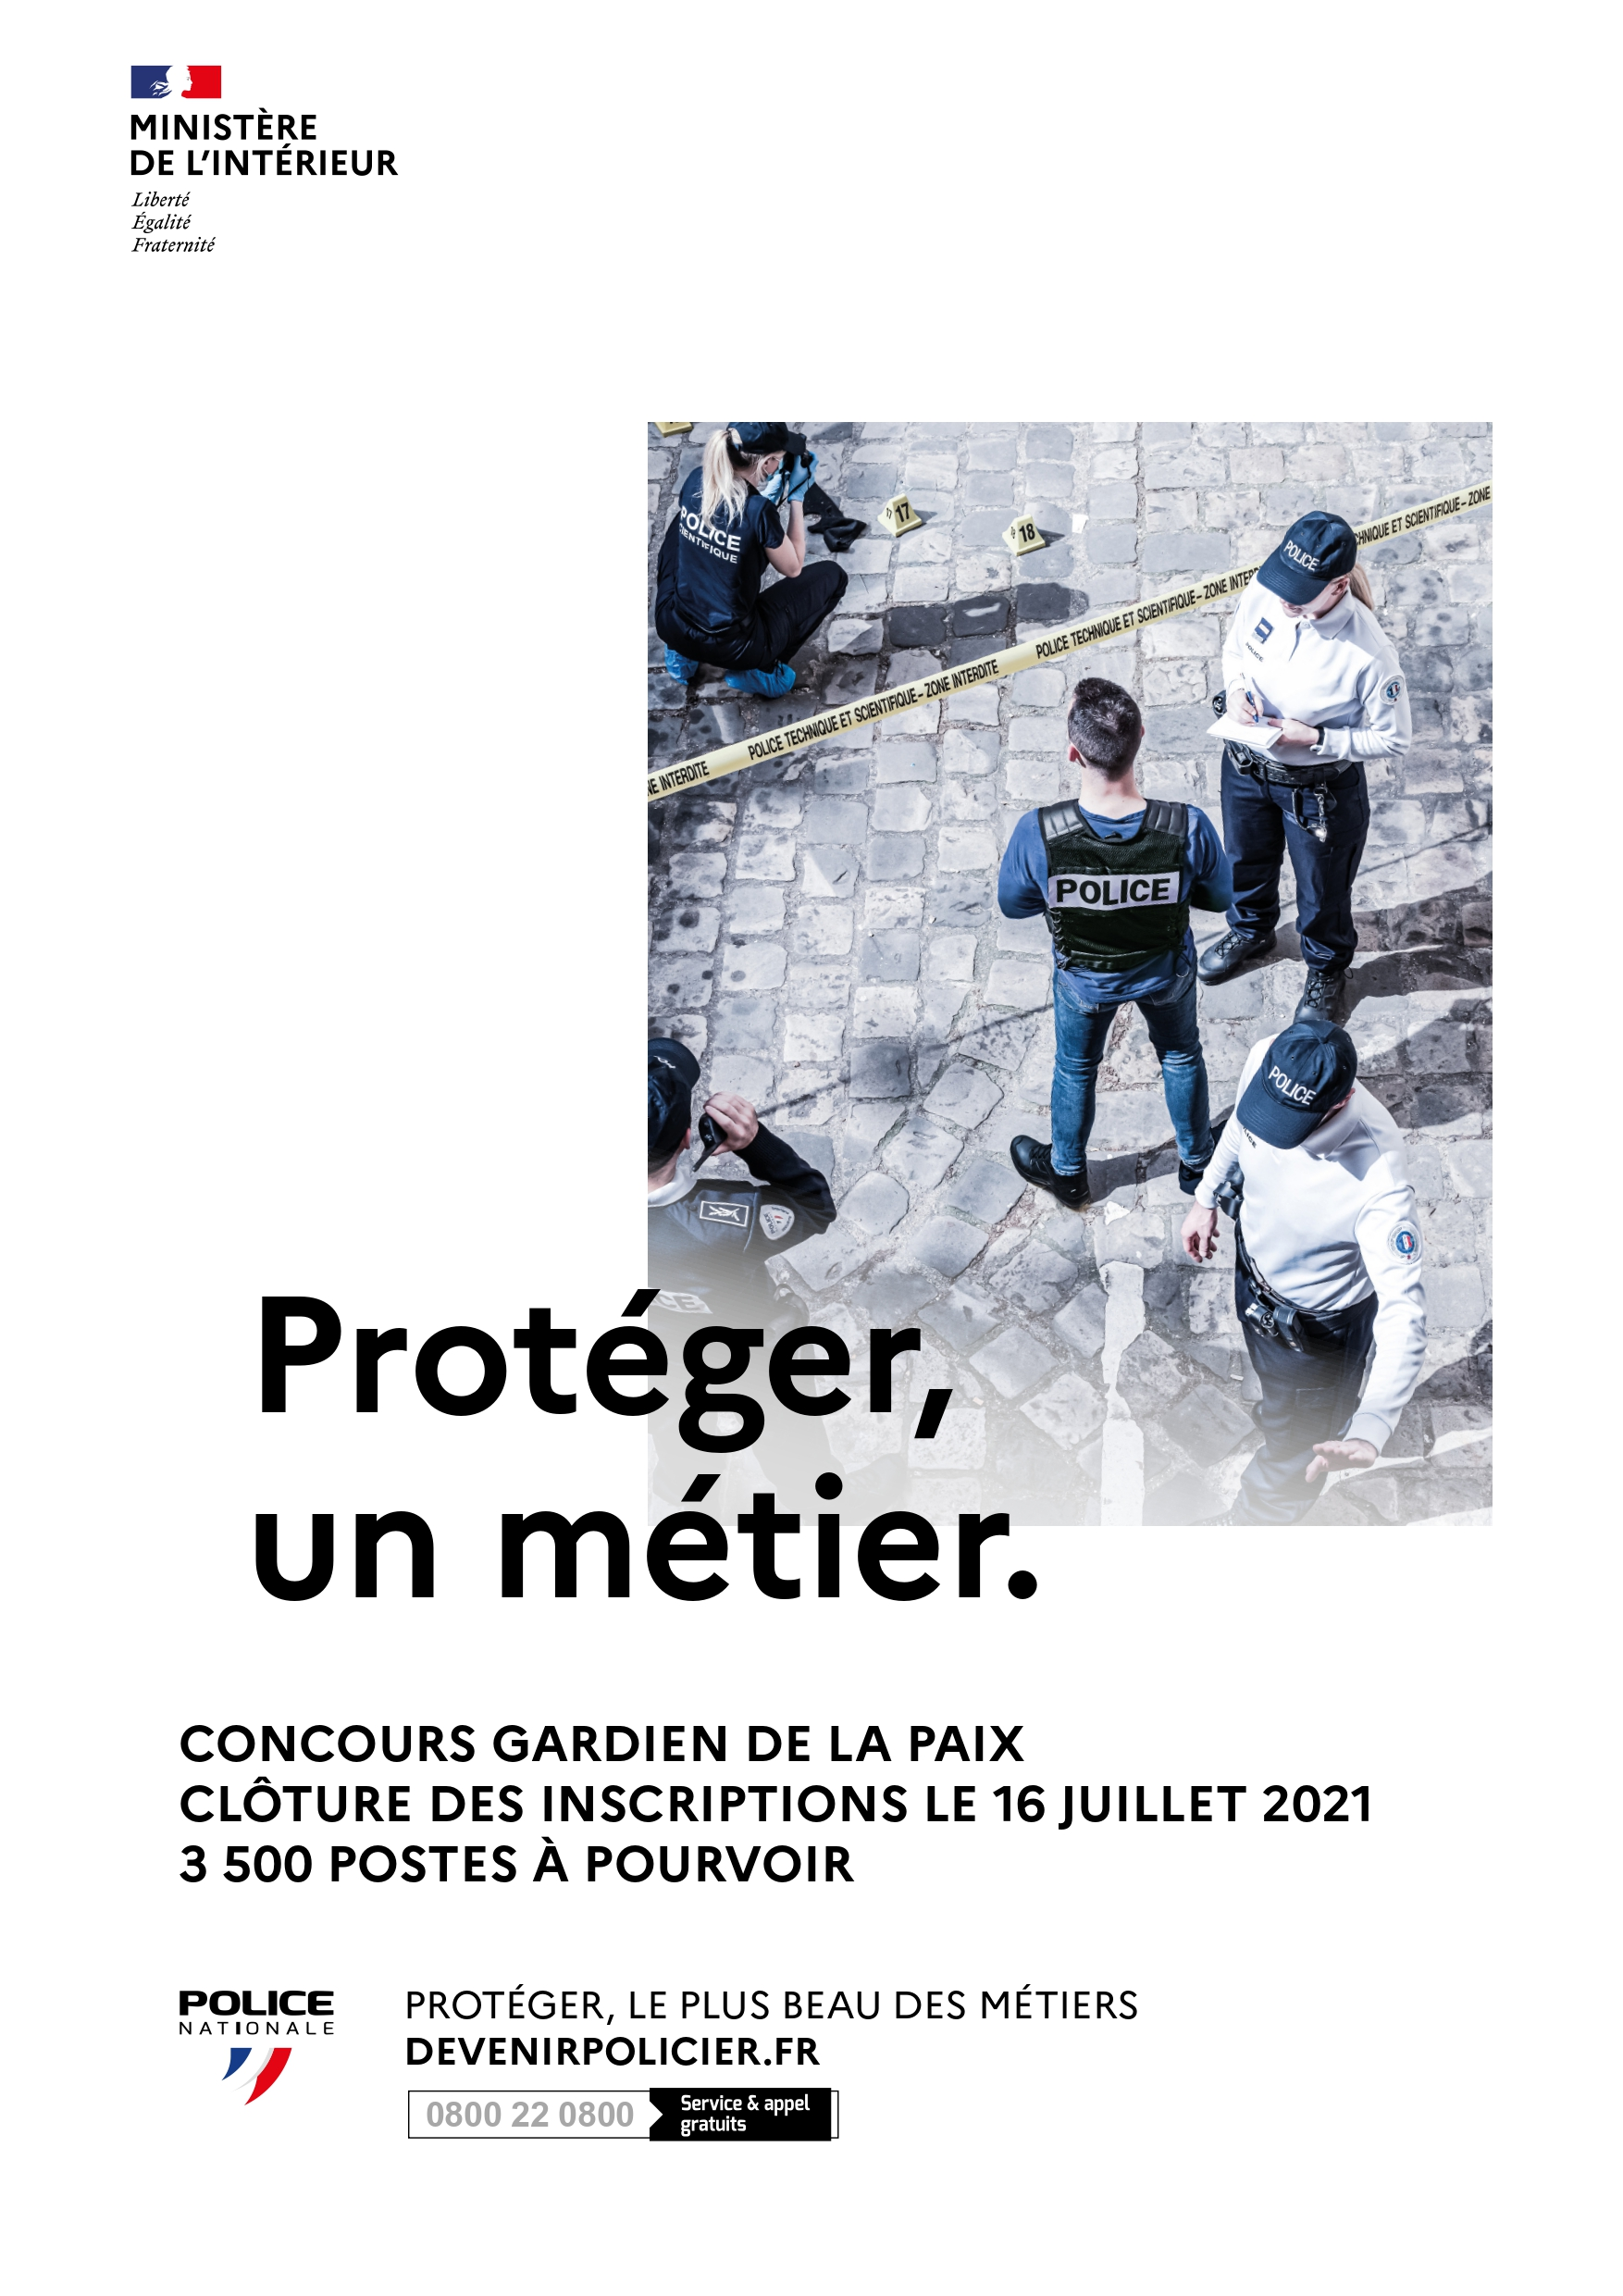 Affiches recrutement PN-GPX-A3-2021_05_03-2_page-0001.jpg